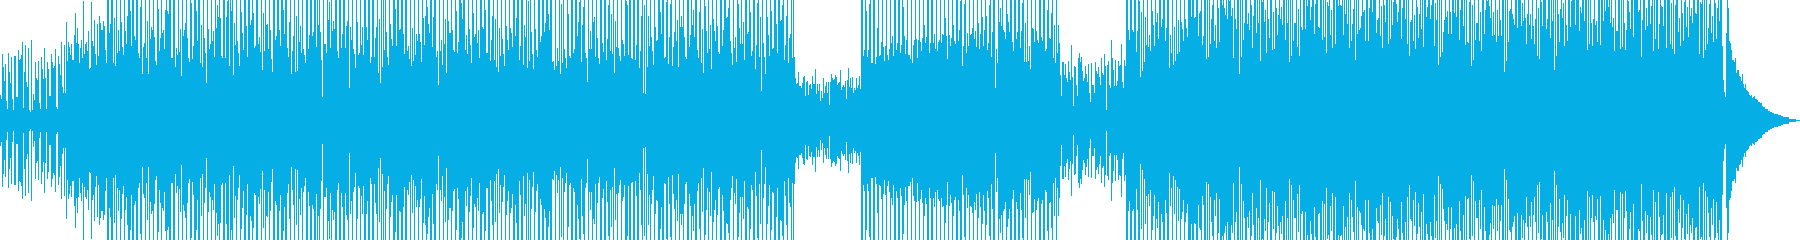 Techno B ★ with the image of a koto / Japanese cafe's reproduced waveform